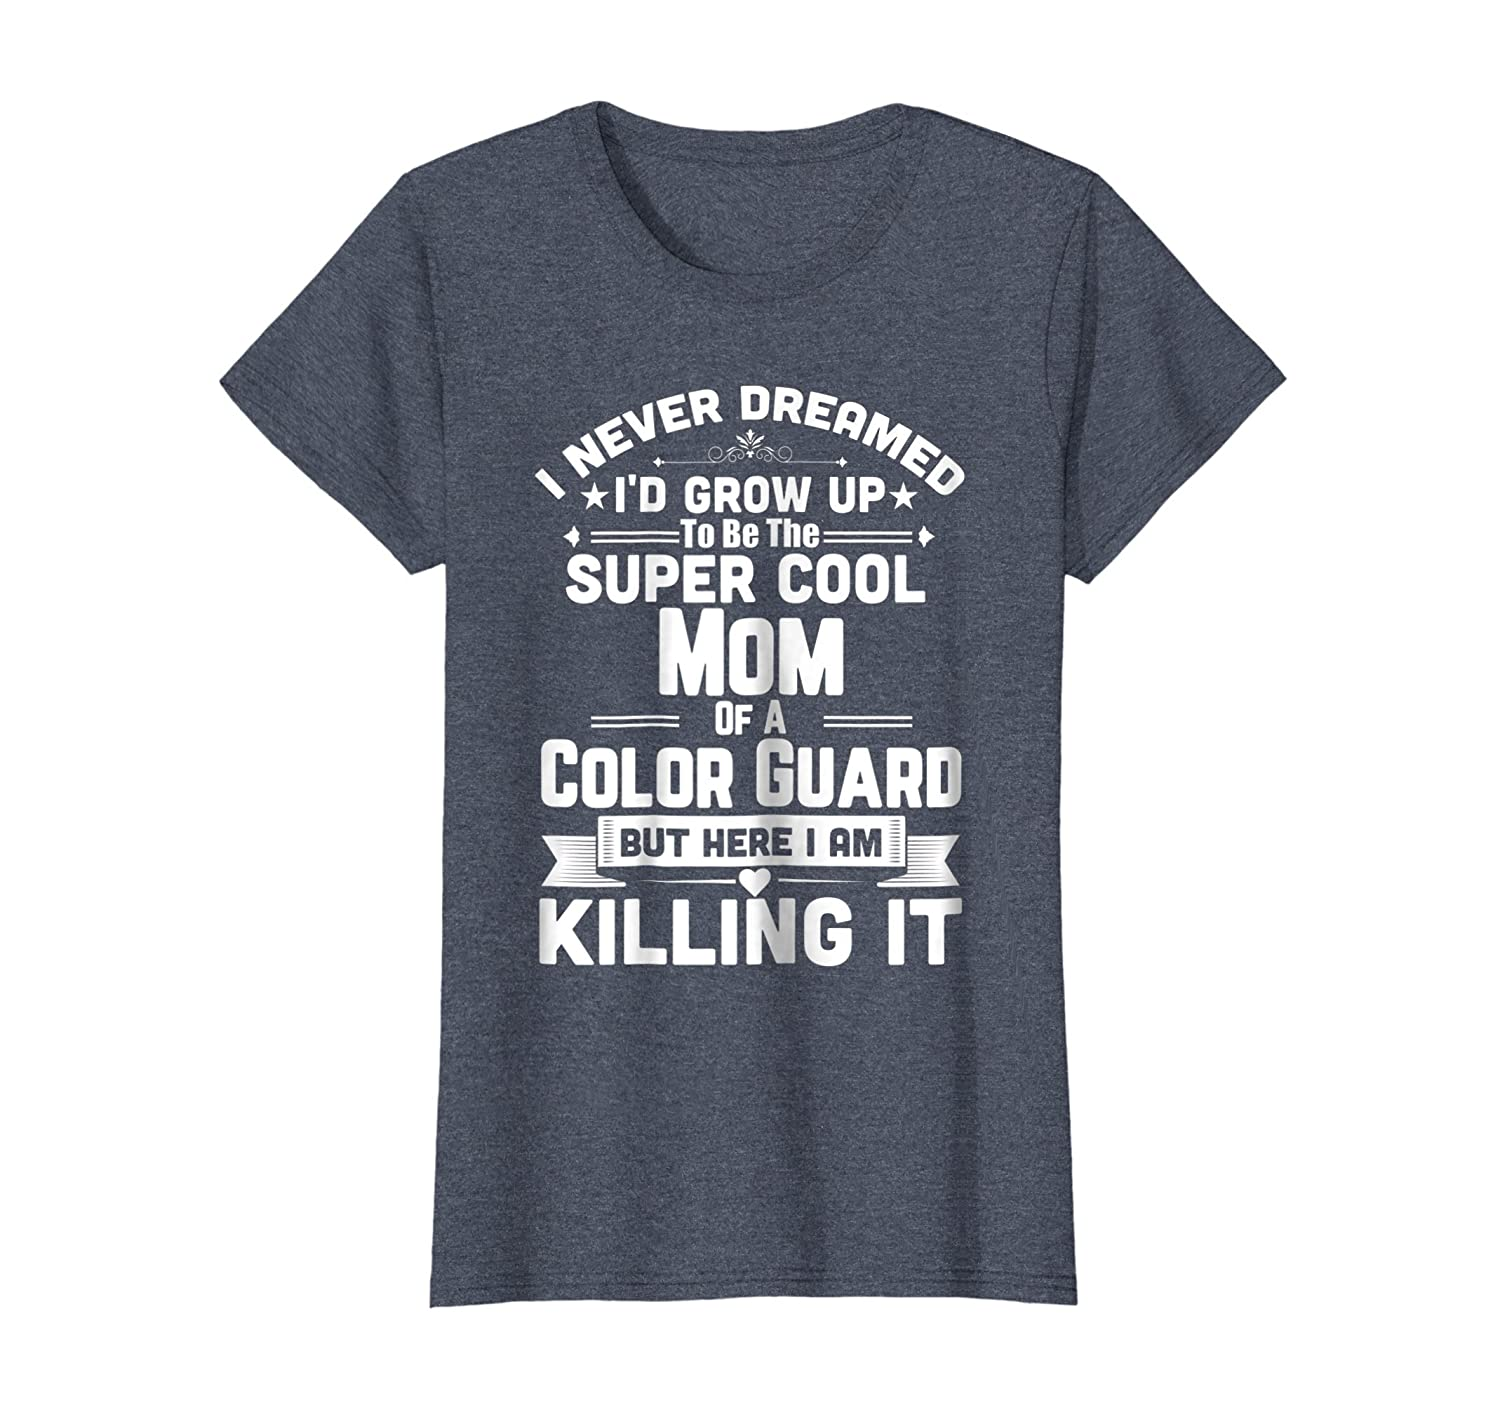 020b1b76 Amazon.com: Super Cool Mom Of A Color Guard Funny Squad Apparel T-Shirt:  Clothing